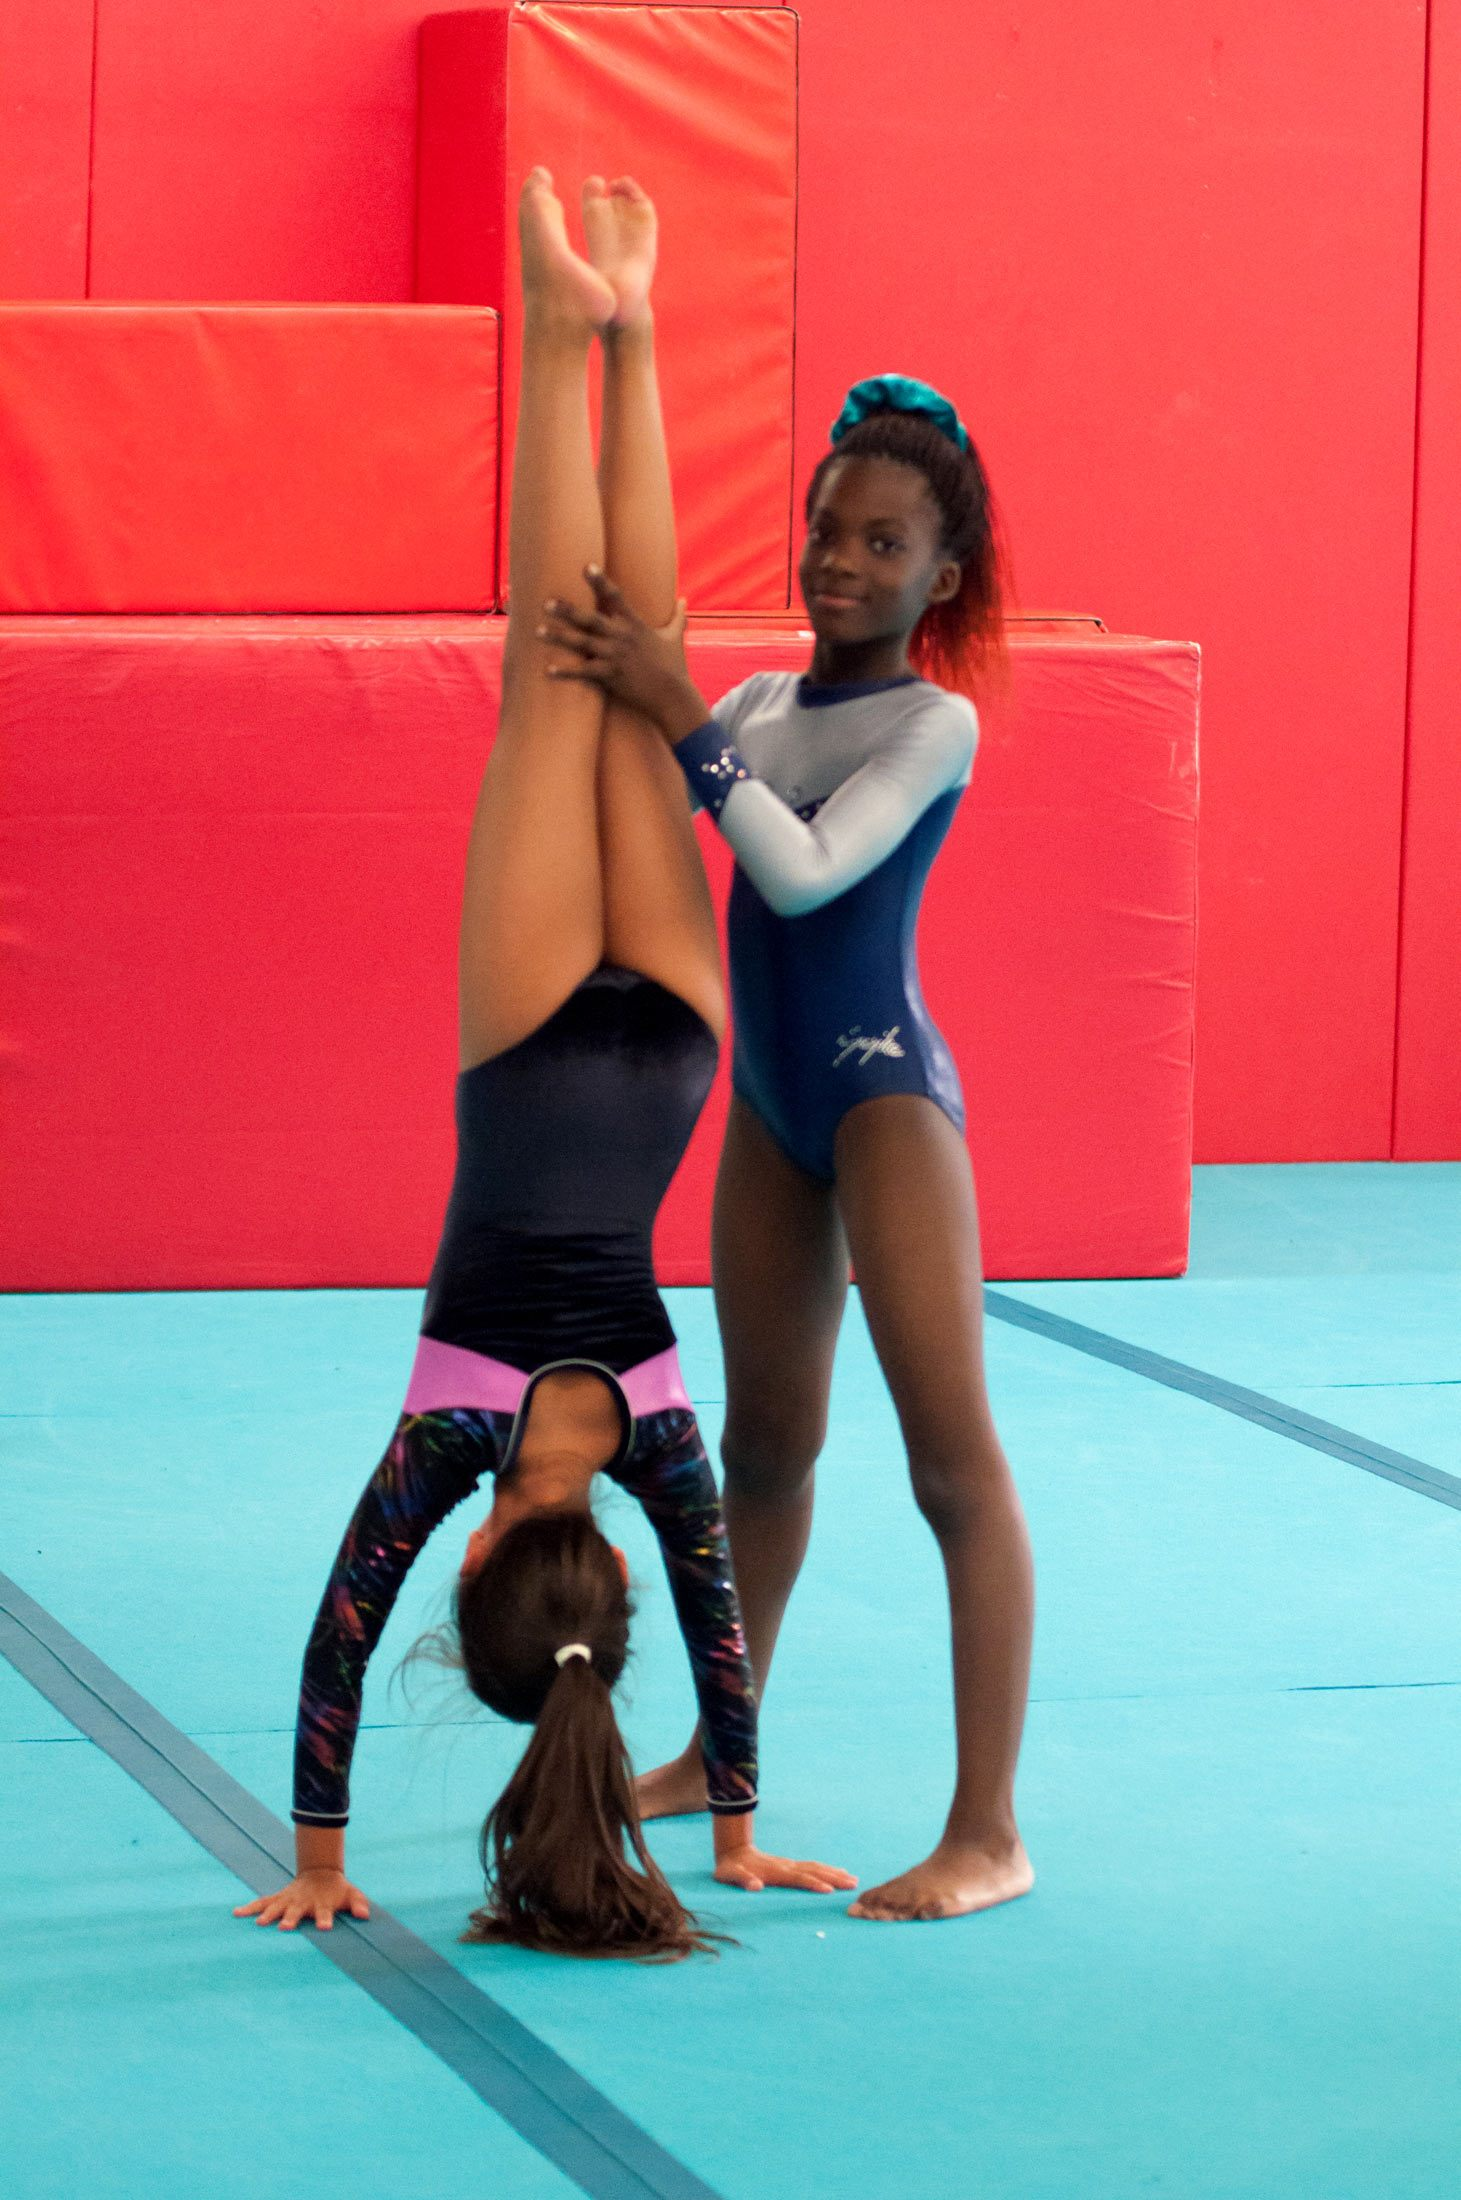 gymnast helping with handstand